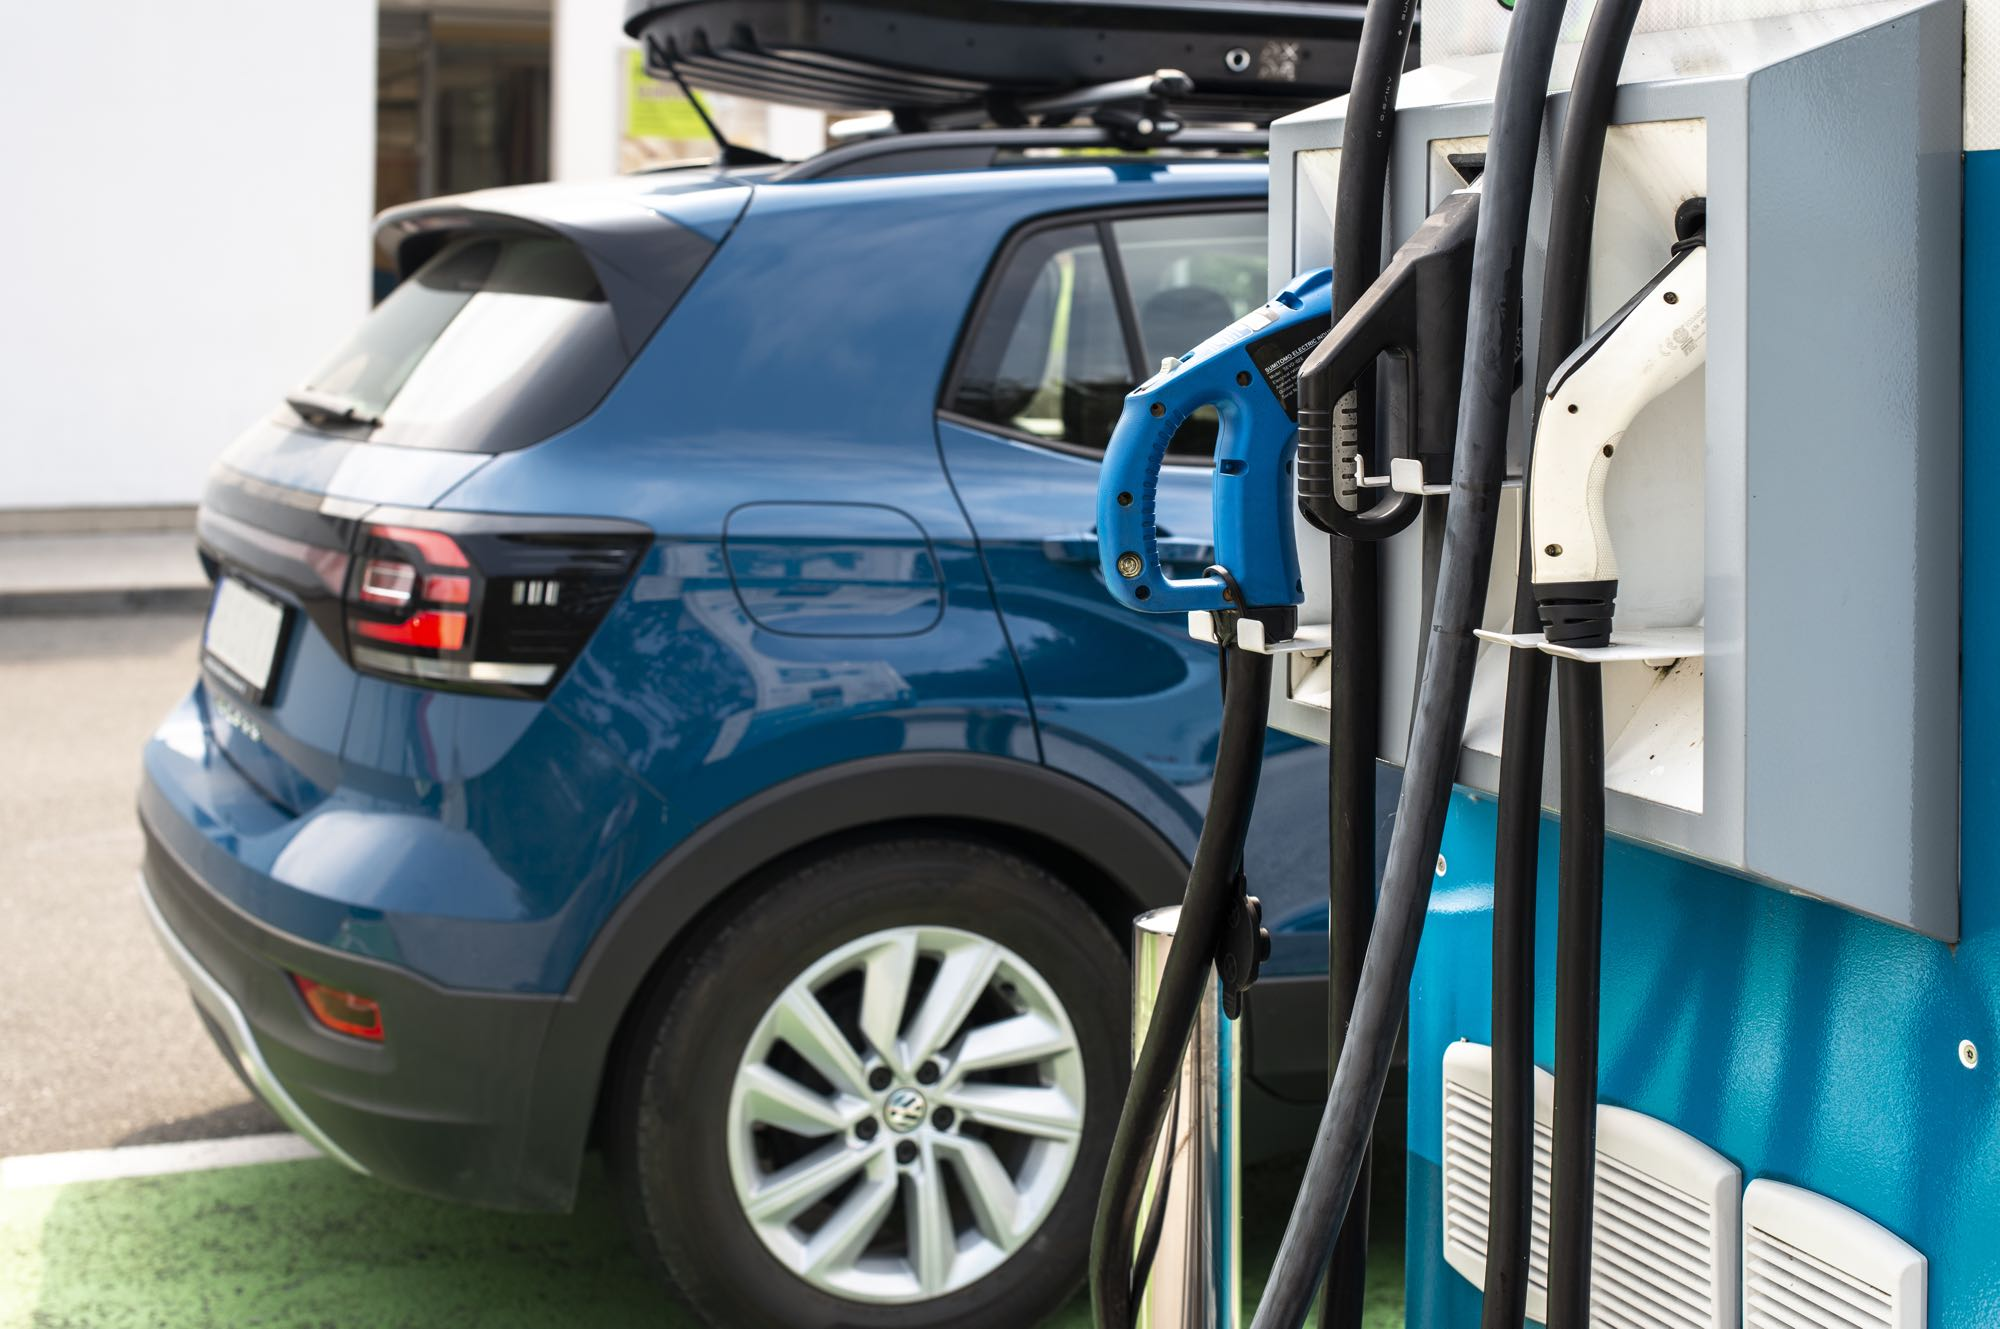 Filling up a hybrid car